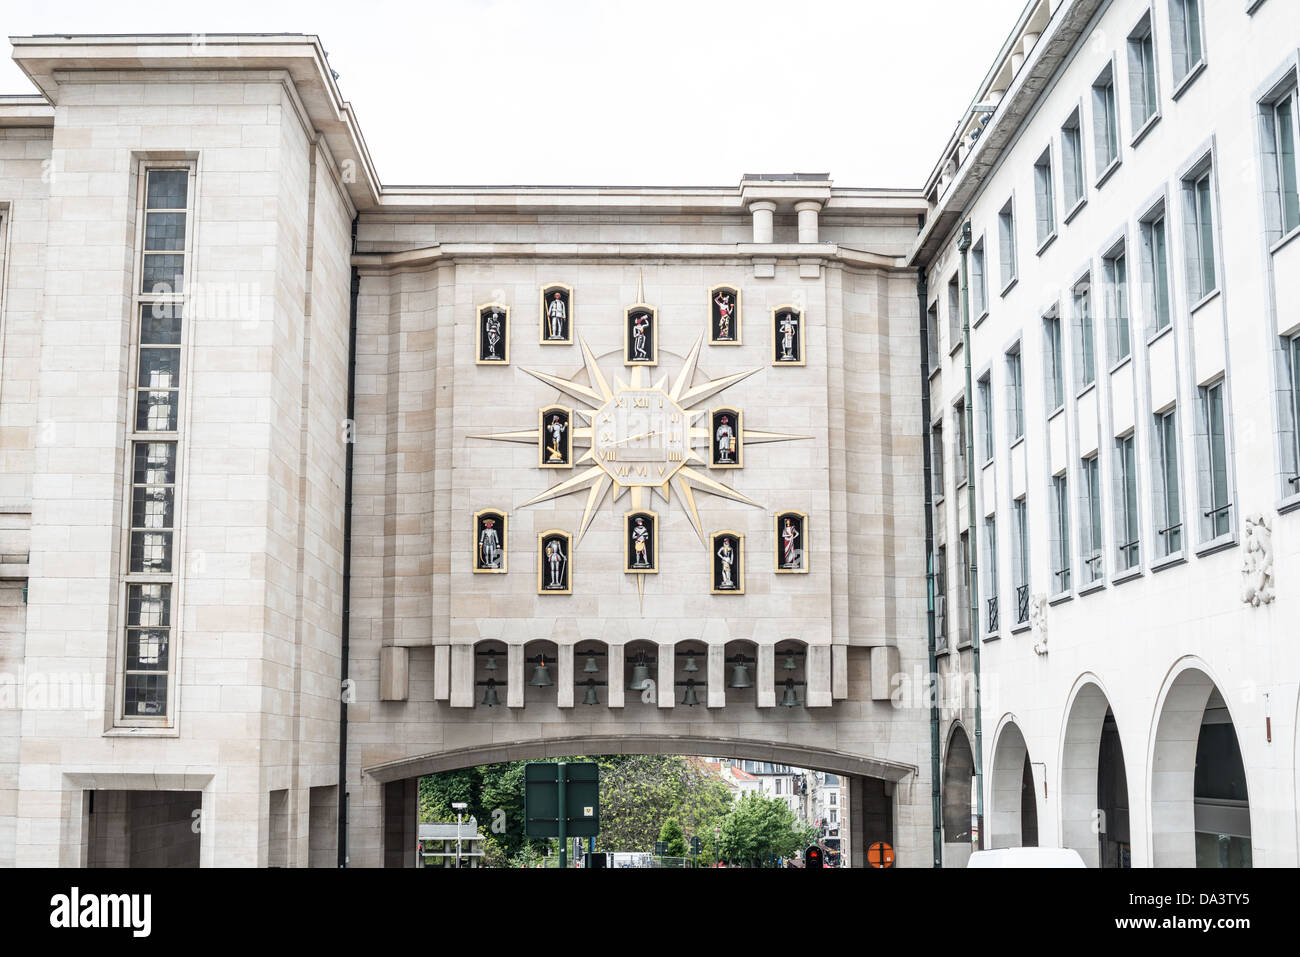 BRUSSELS, Belgium - A carillon clock on an overpass in the Mont des Arts. - Stock Image